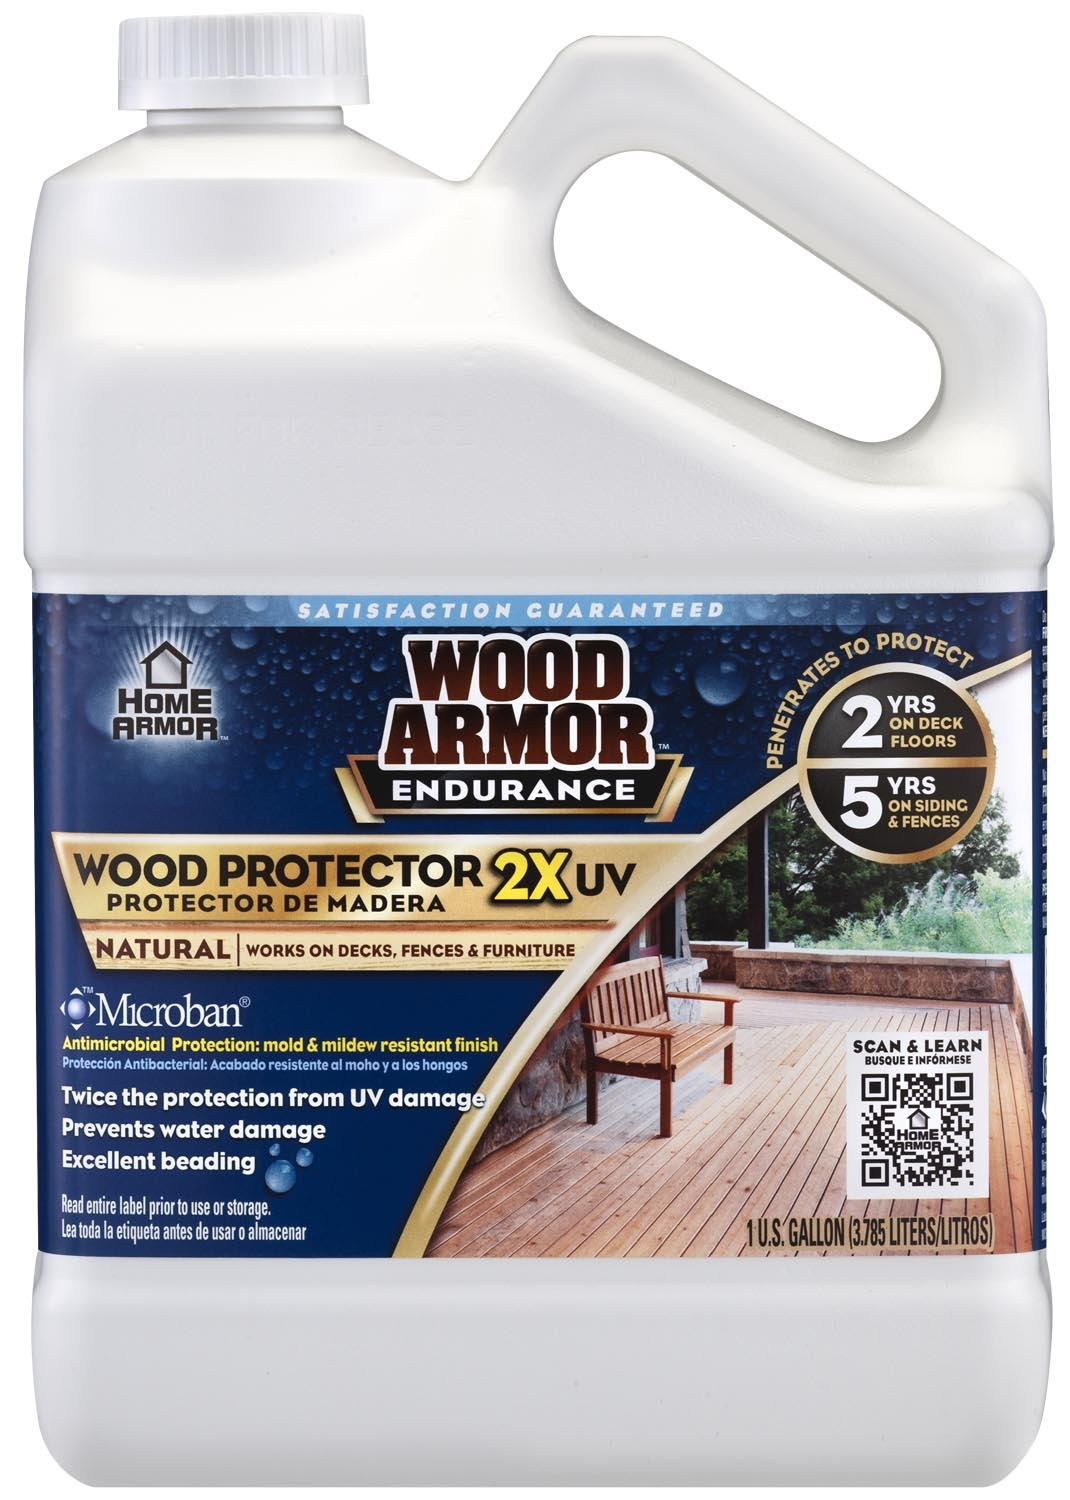 Home Armor Home Armor Deck Cleaning Coating